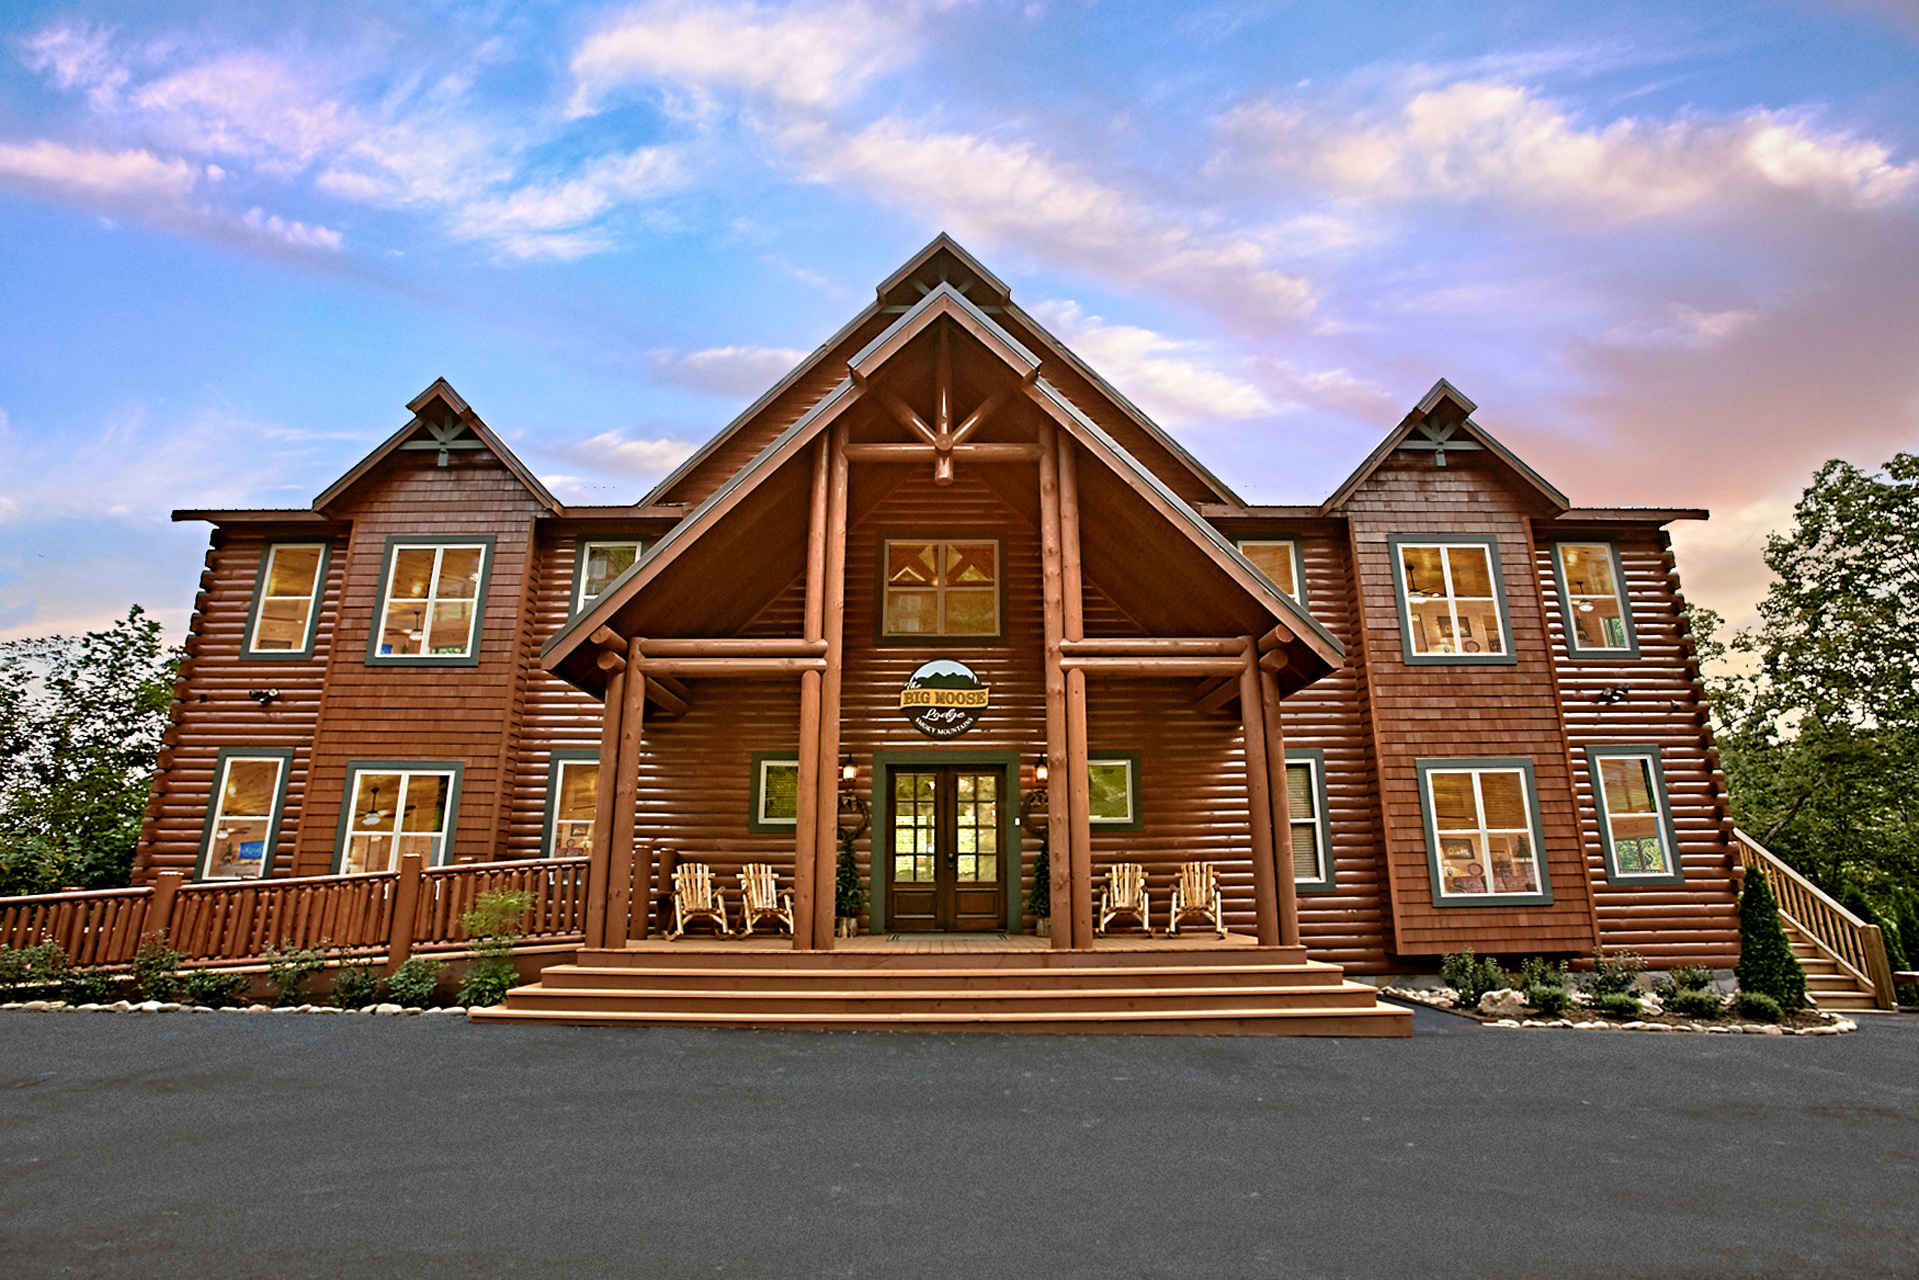 Gatlinburg Cabin Specials and Discounts on Cabin Rentals